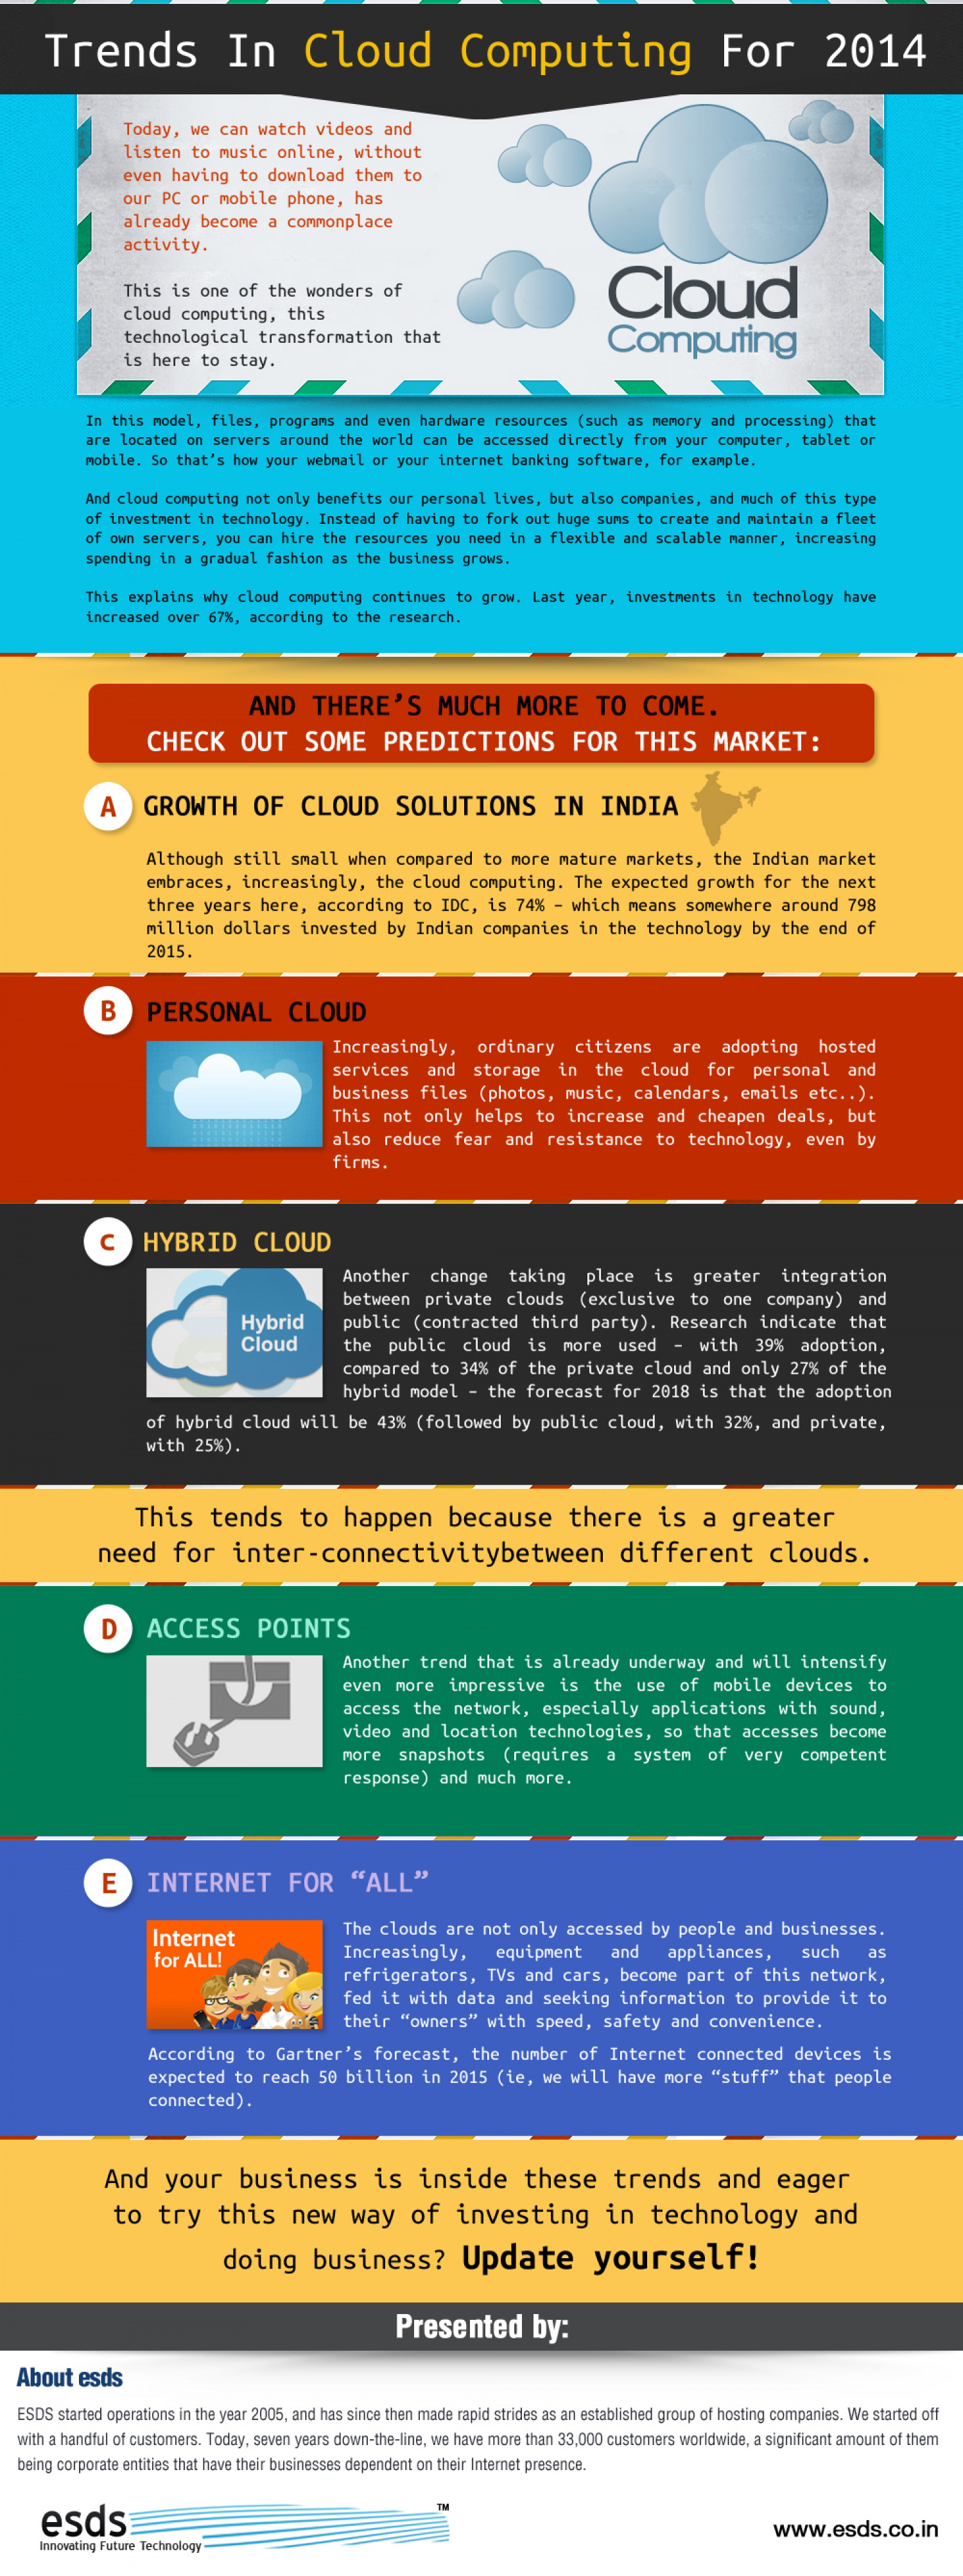 Trends In Cloud Computing For 2014 Infographic